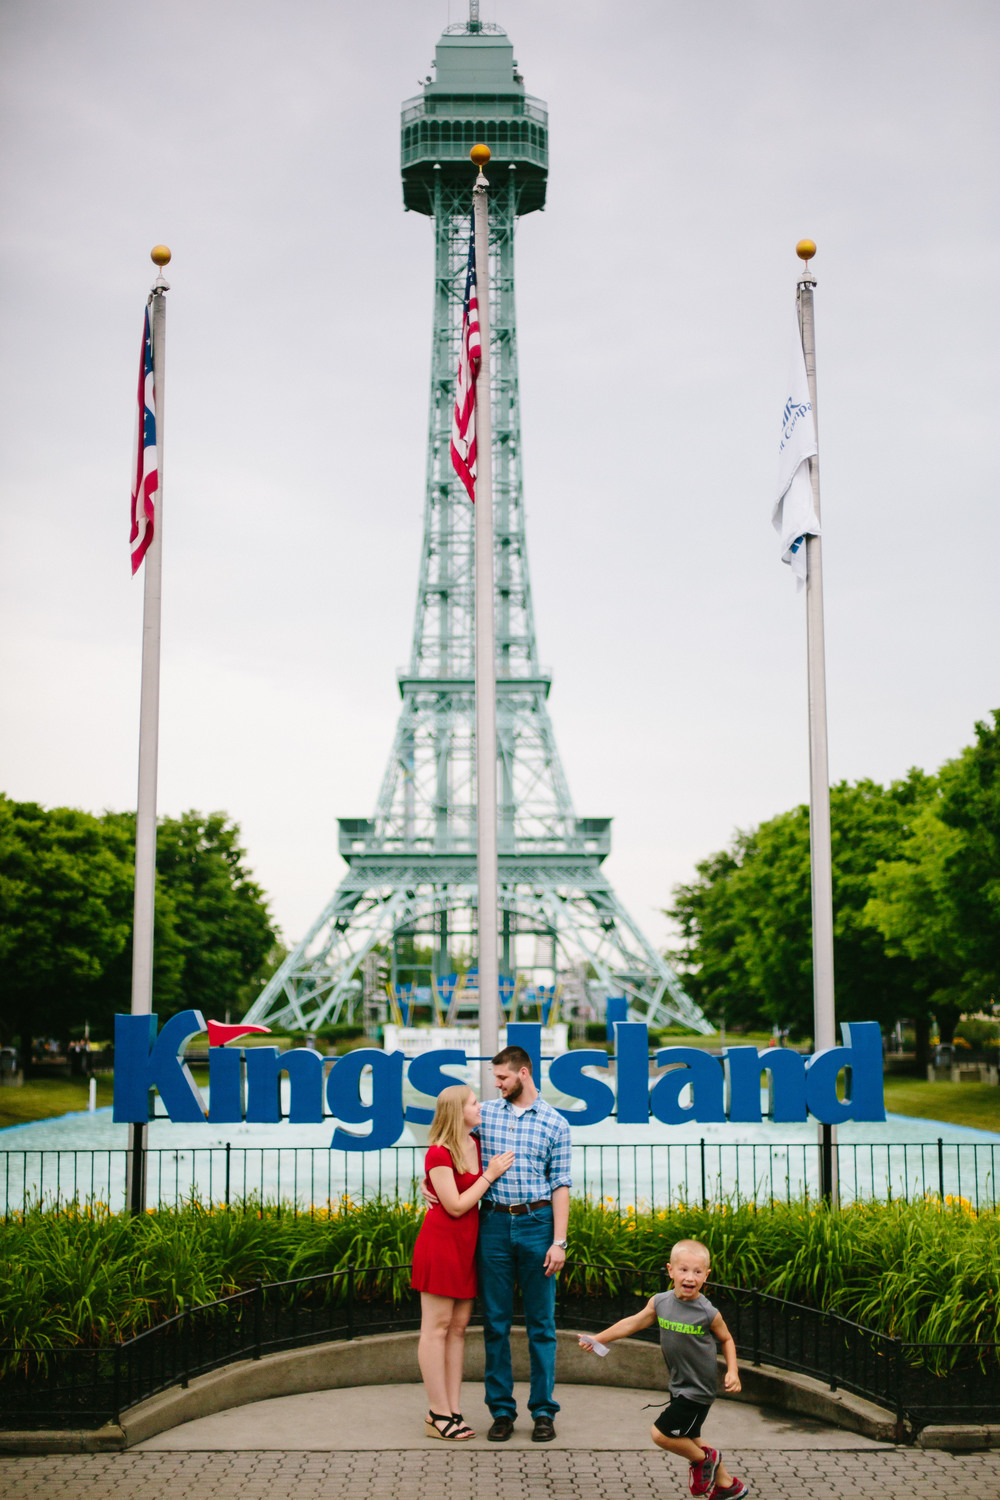 Kings Island-Leanne & Wayne-Corrie Mick Photography-4.jpg